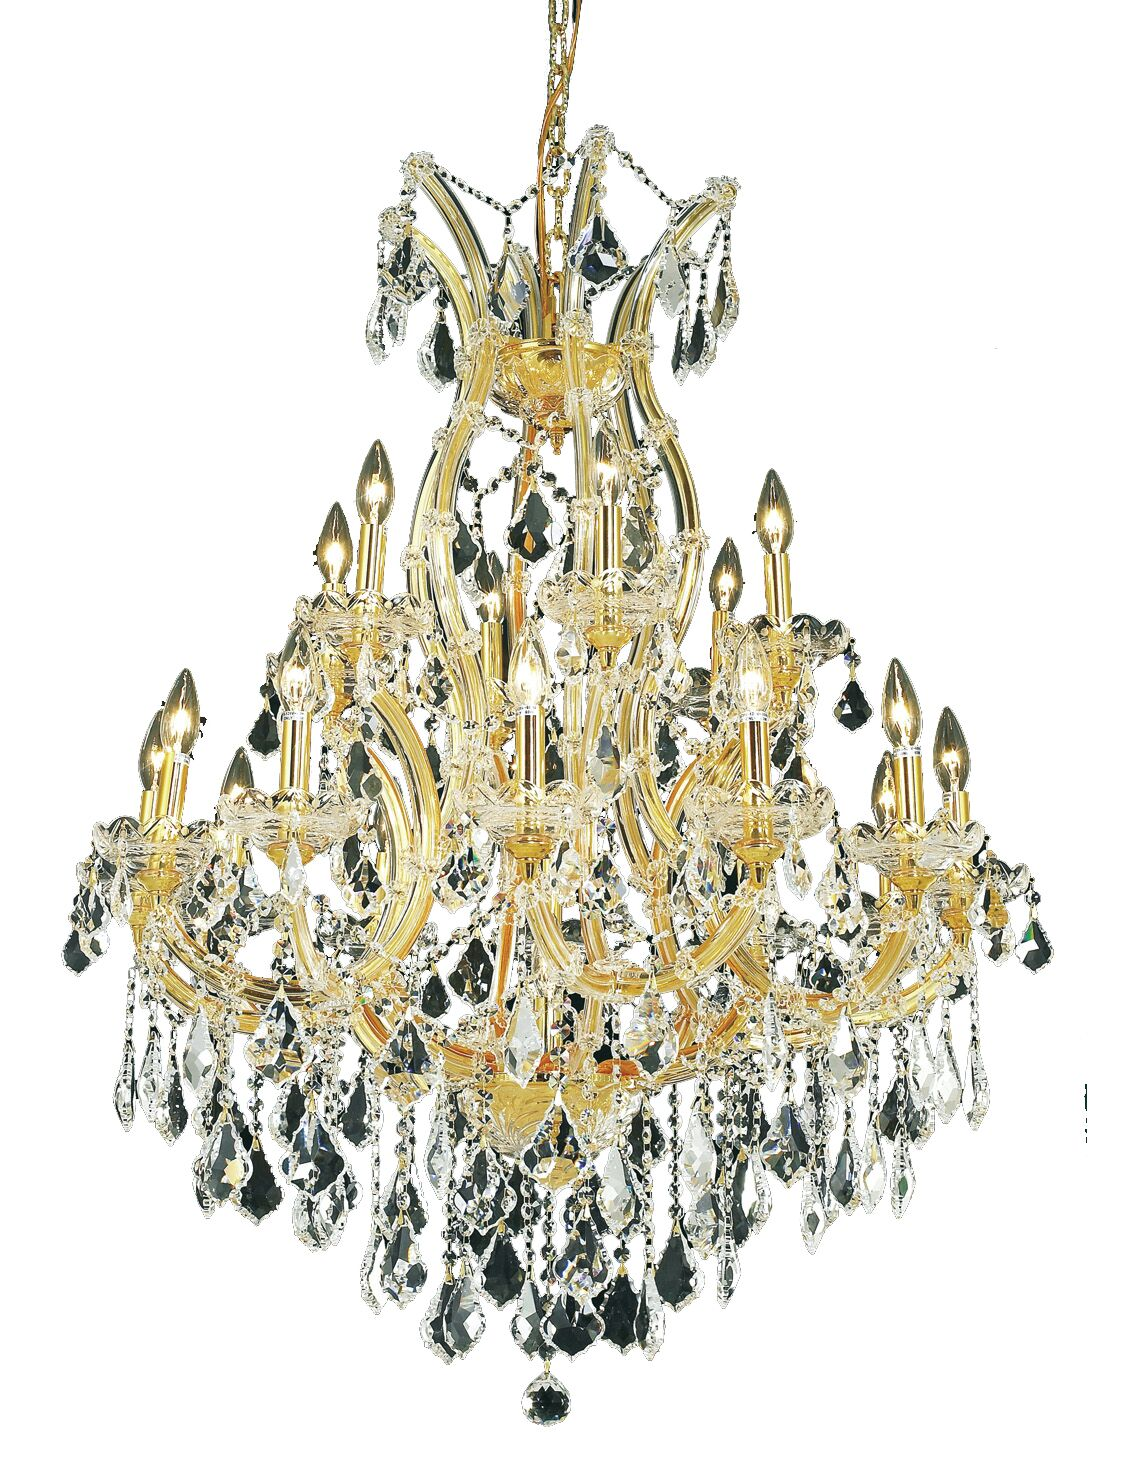 Regina Traditional 19-Light Royal Cut Candle Style Chandelier Finish / Crystal Finish / Crystal Trim: Gold / Crystal (Clear) / Spectra Swarovski